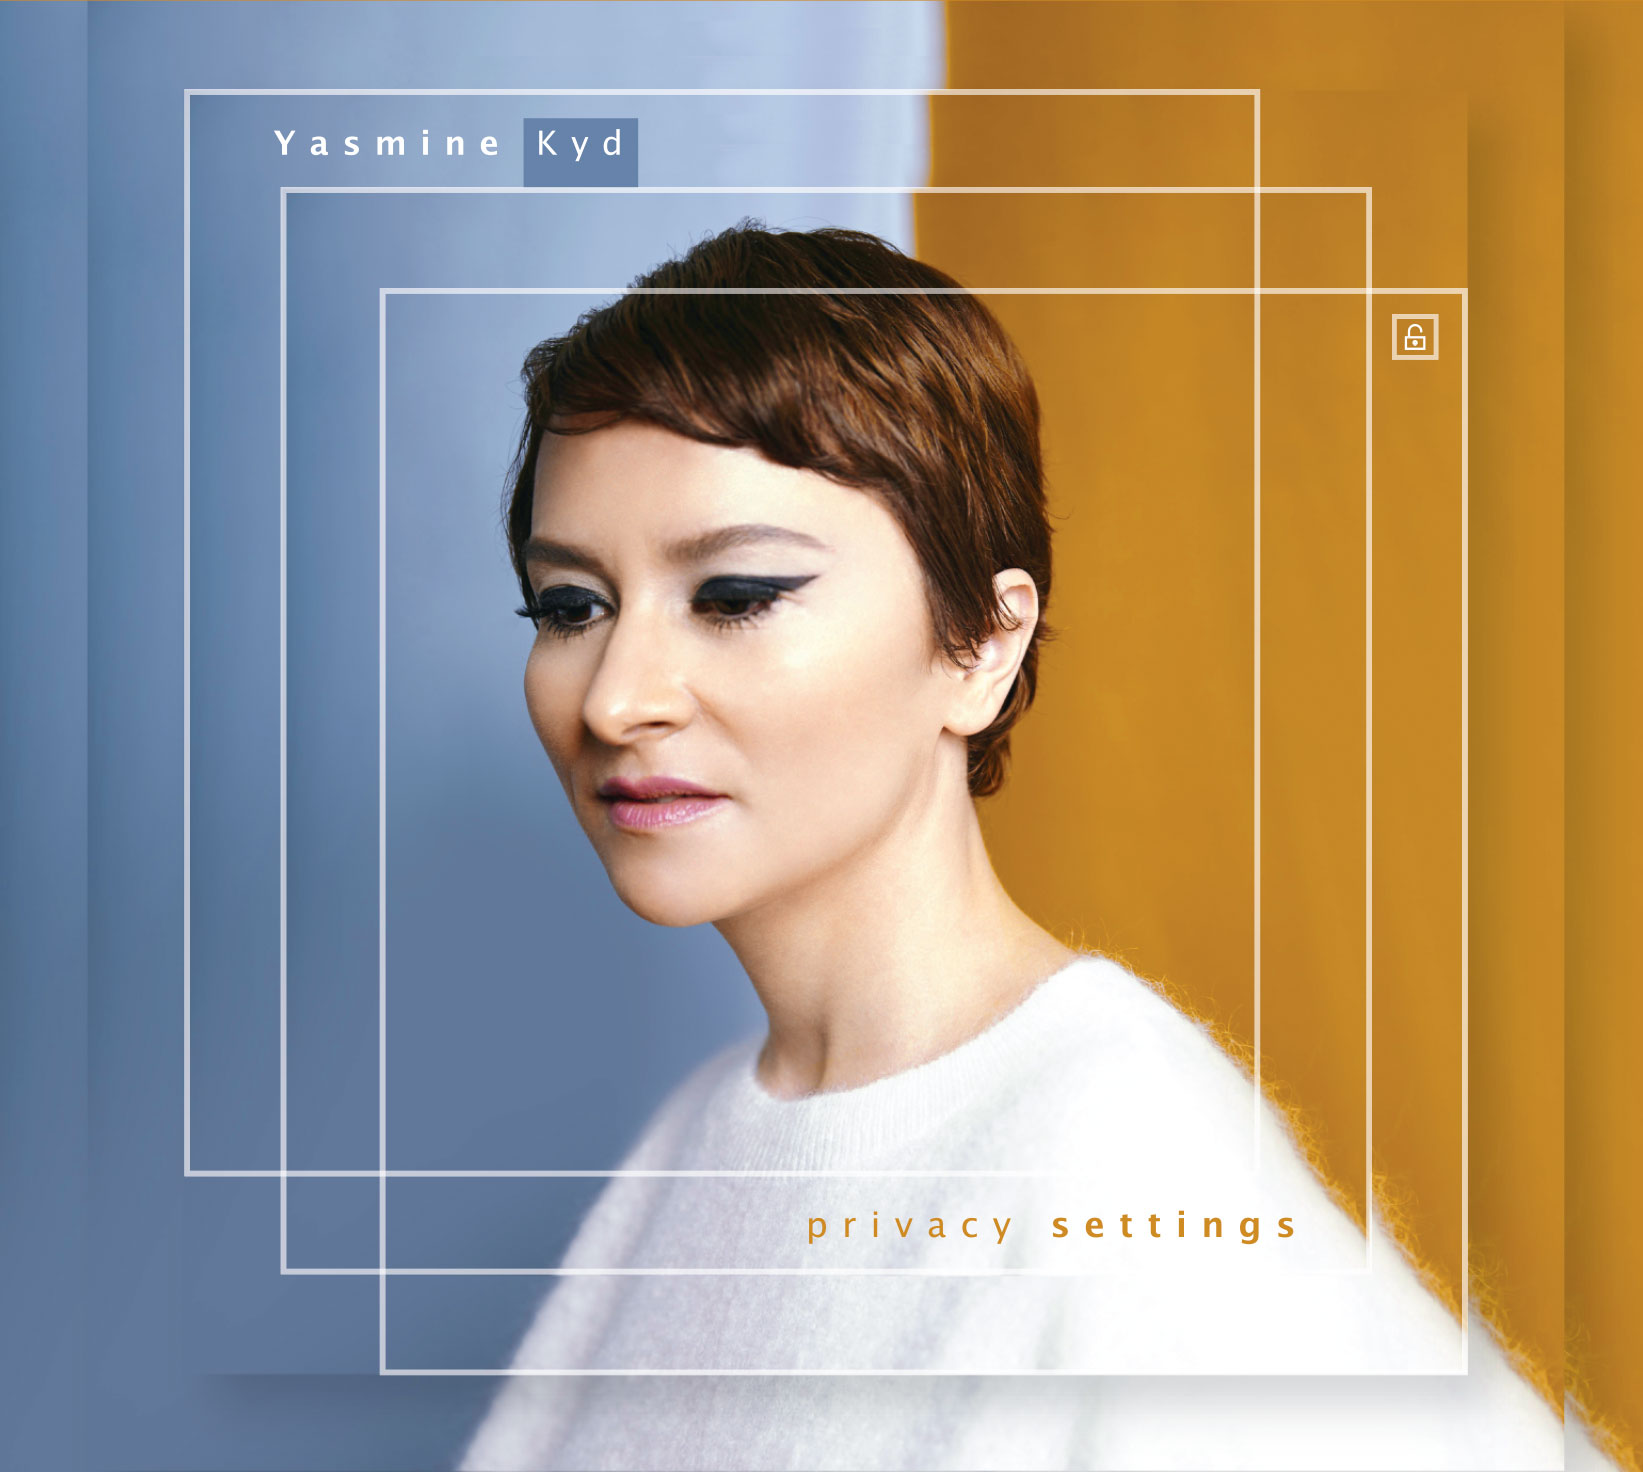 Yasmine Kyd - Privacy Settings